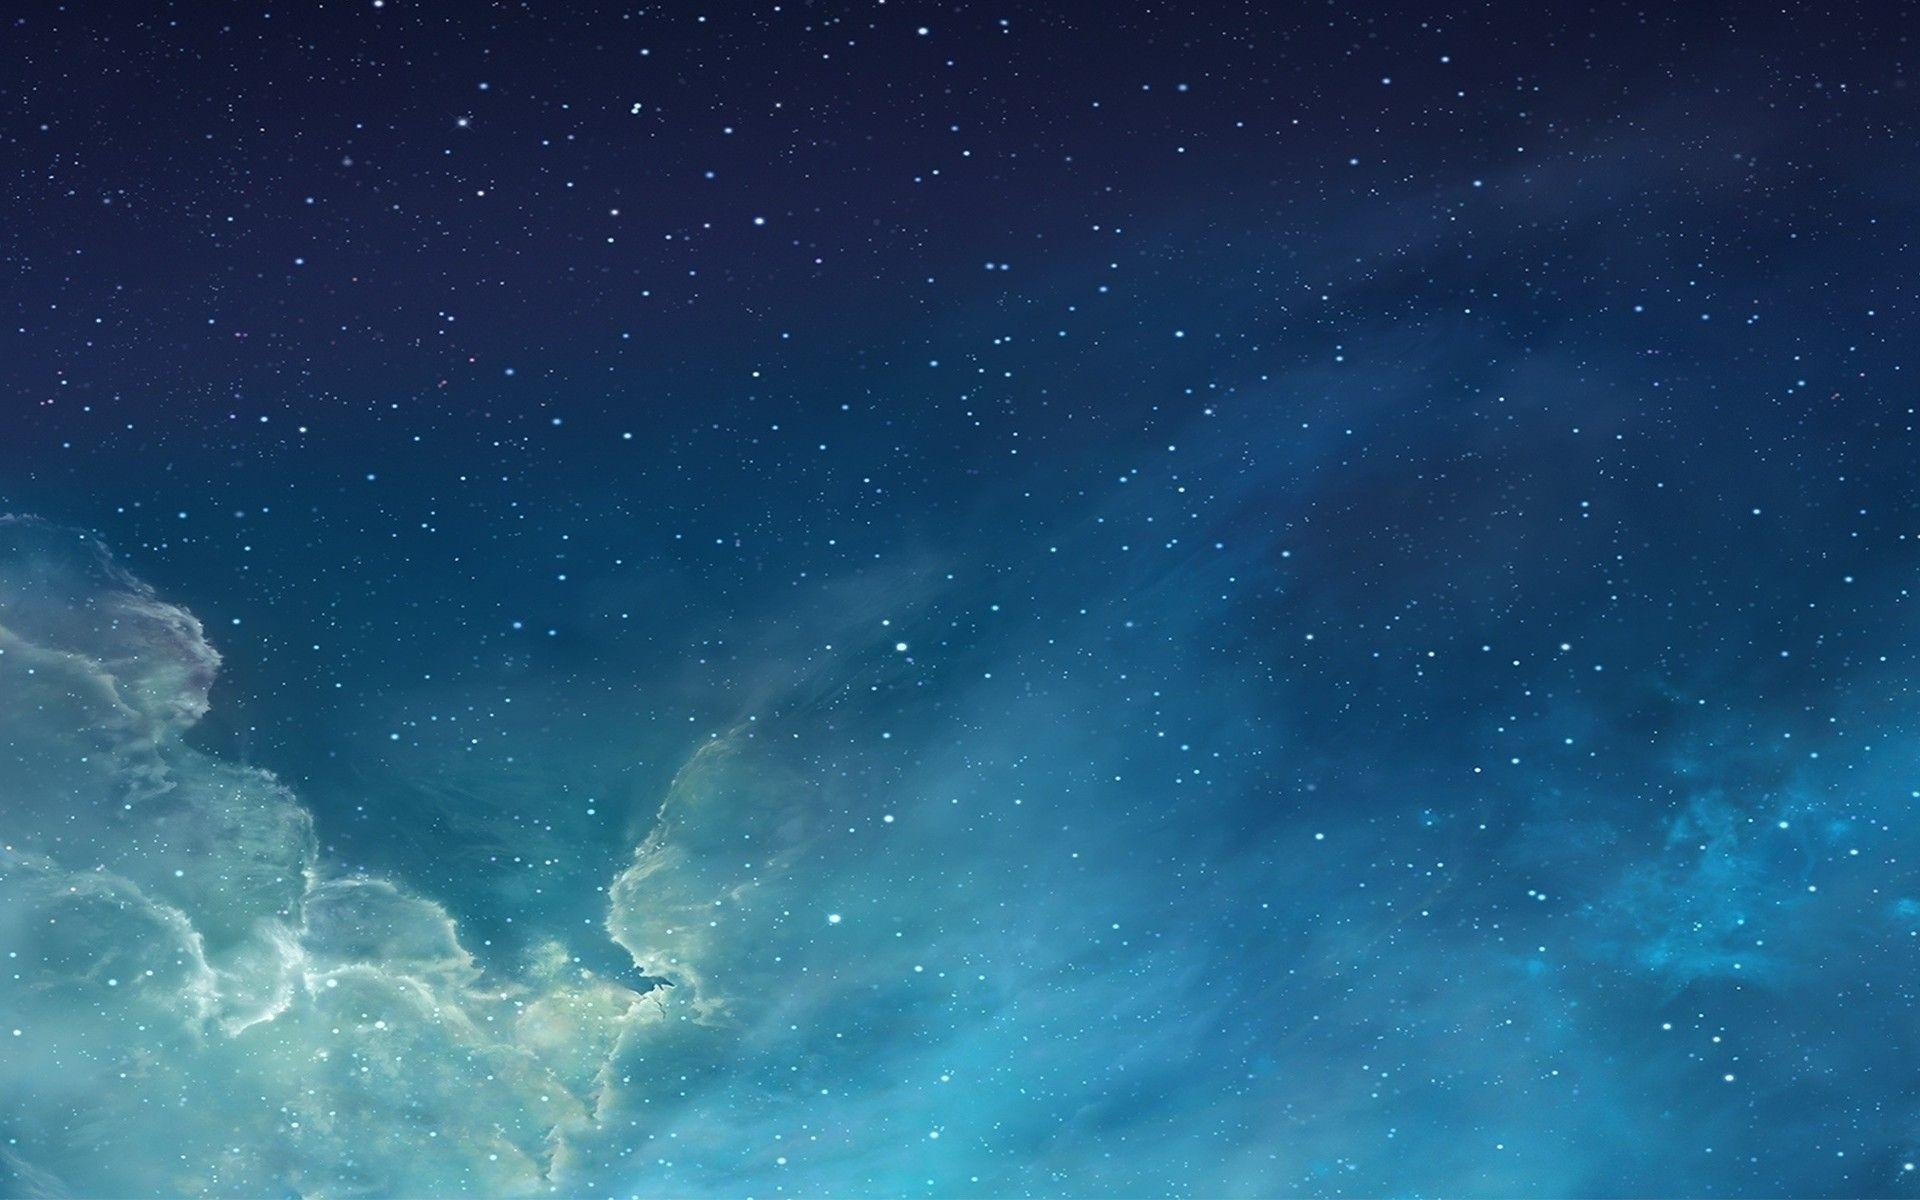 stars in the sky wallpapers - wallpaper cave